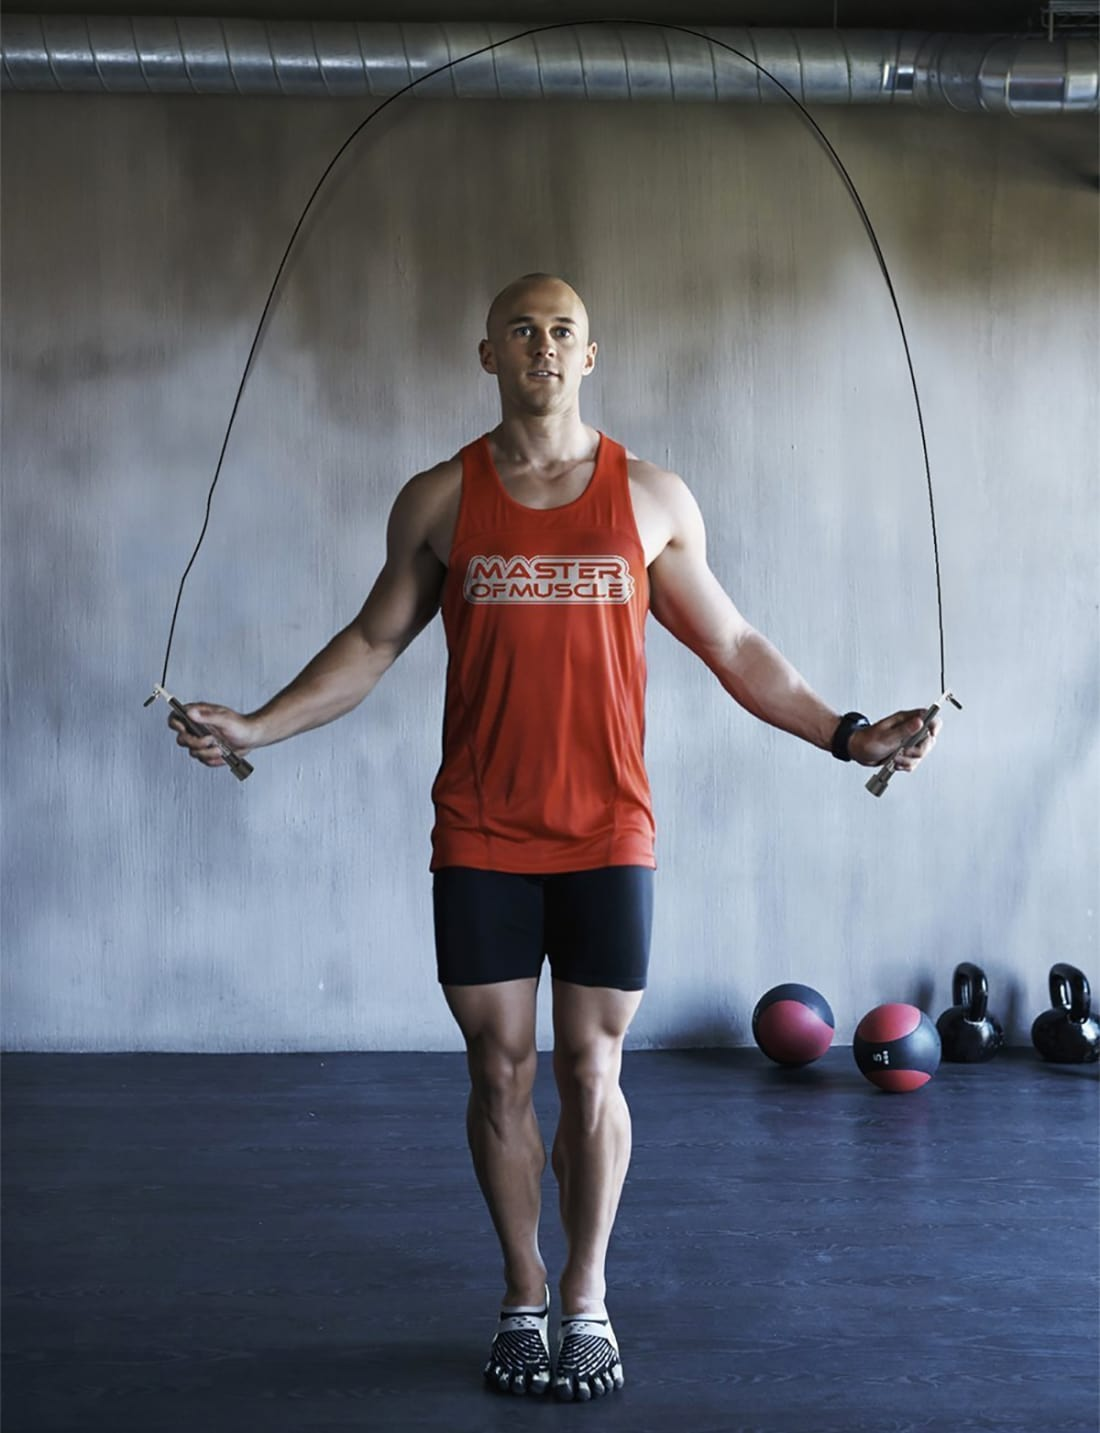 Start Skipping Rope for Cardio